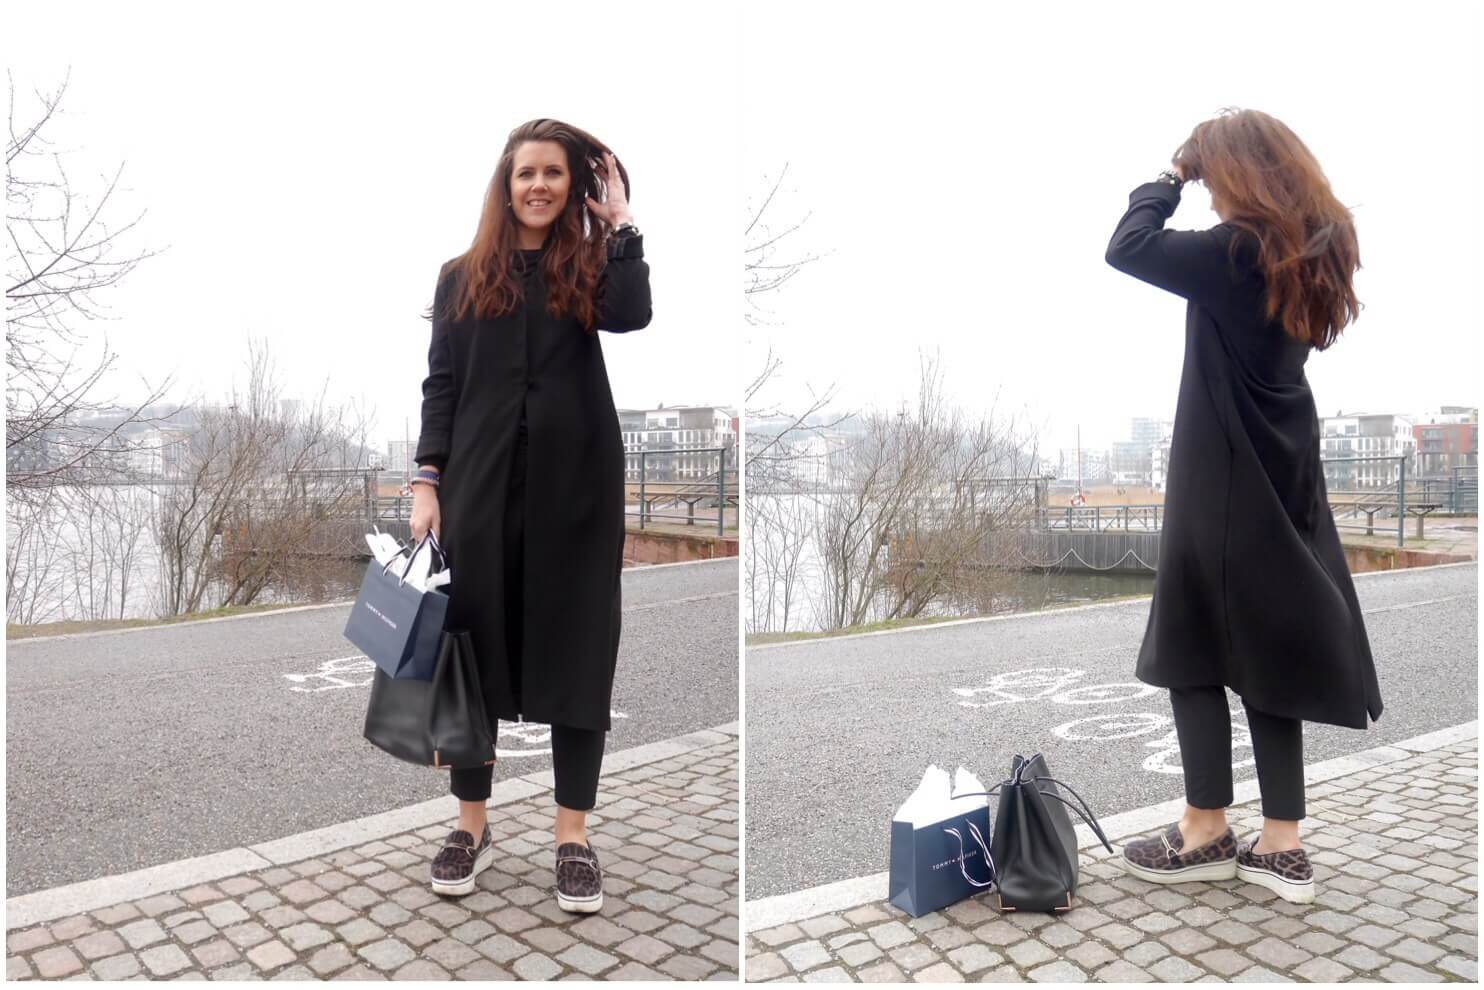 DAGENS OUTFIT - 160406